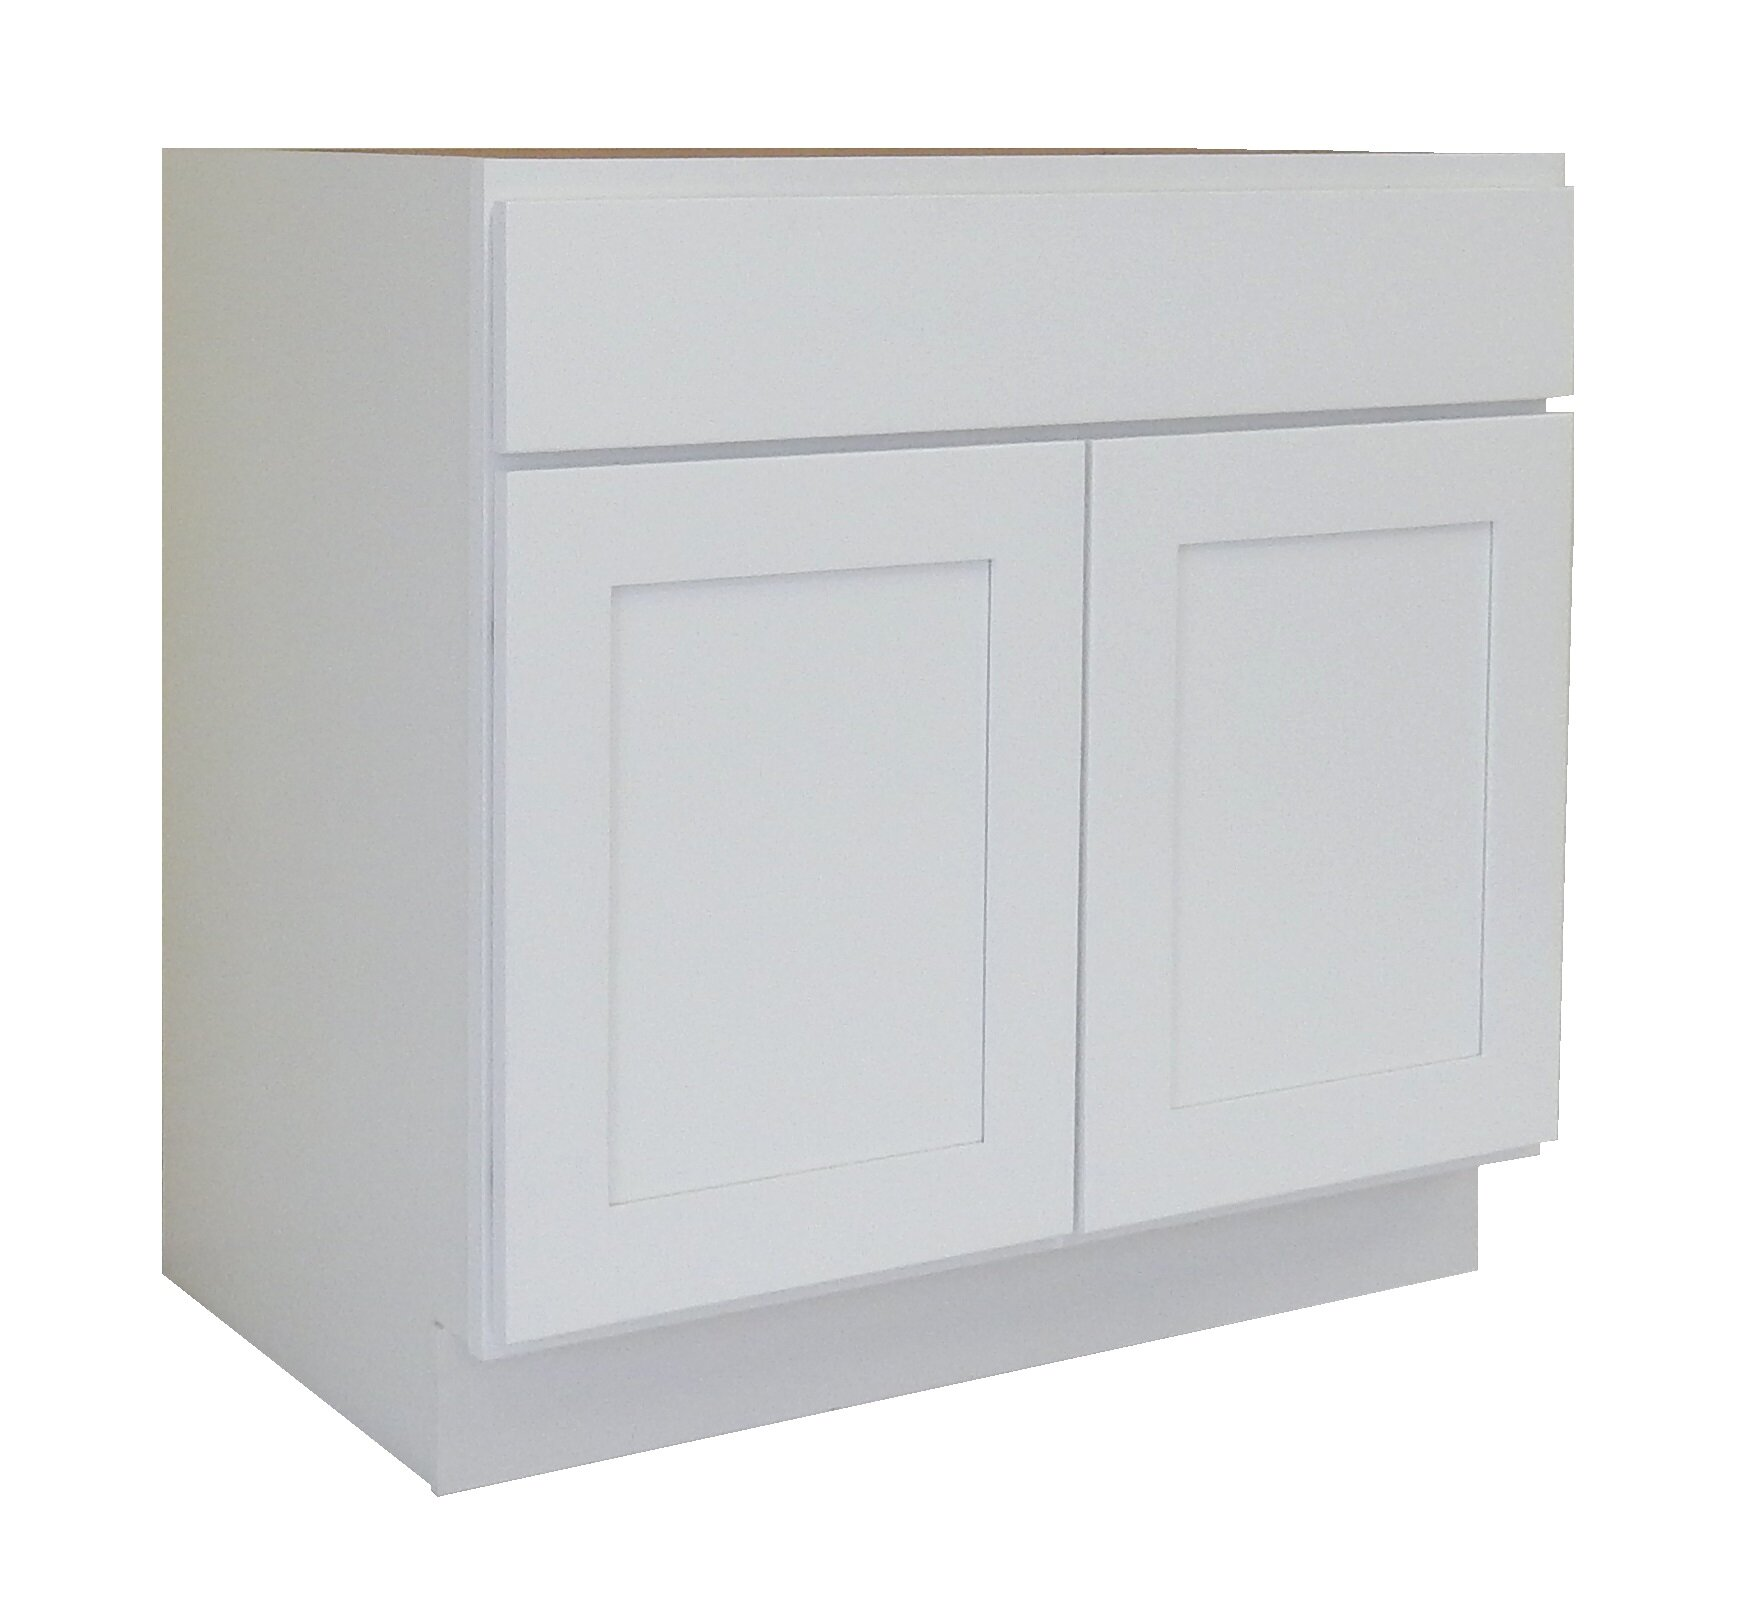 NGY Stone & Cabinet Shaker Cabinet 30\